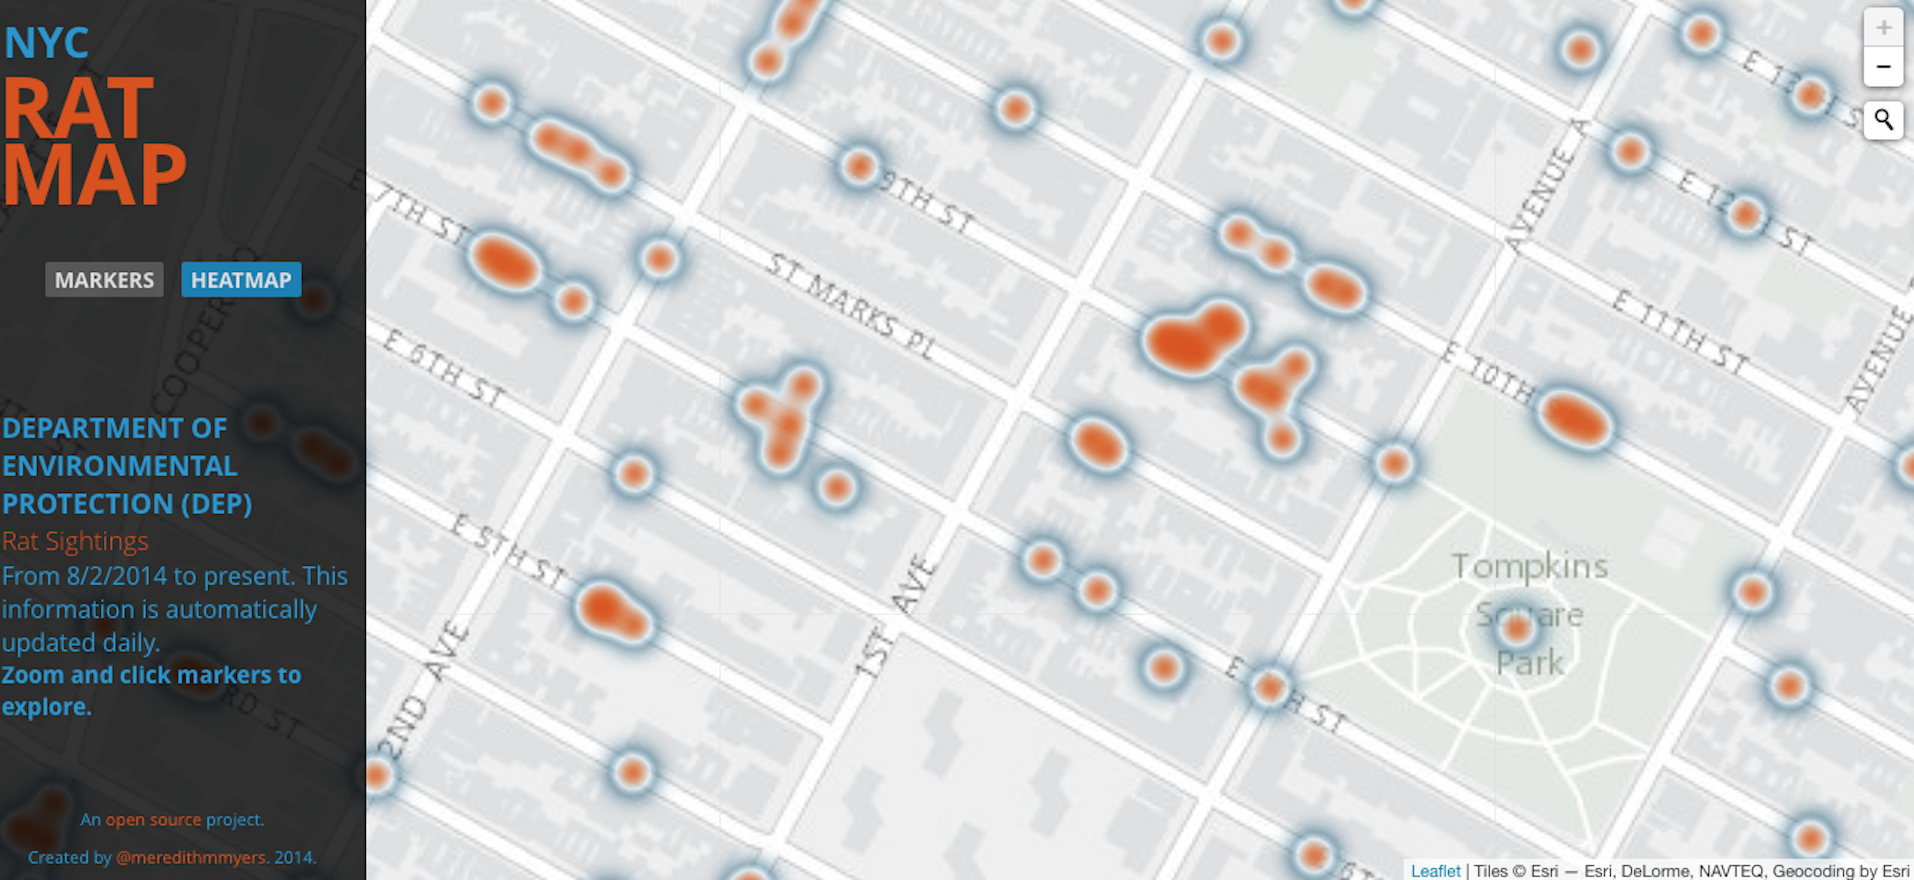 Cellphone coverage and rat maps: content for listing portals?